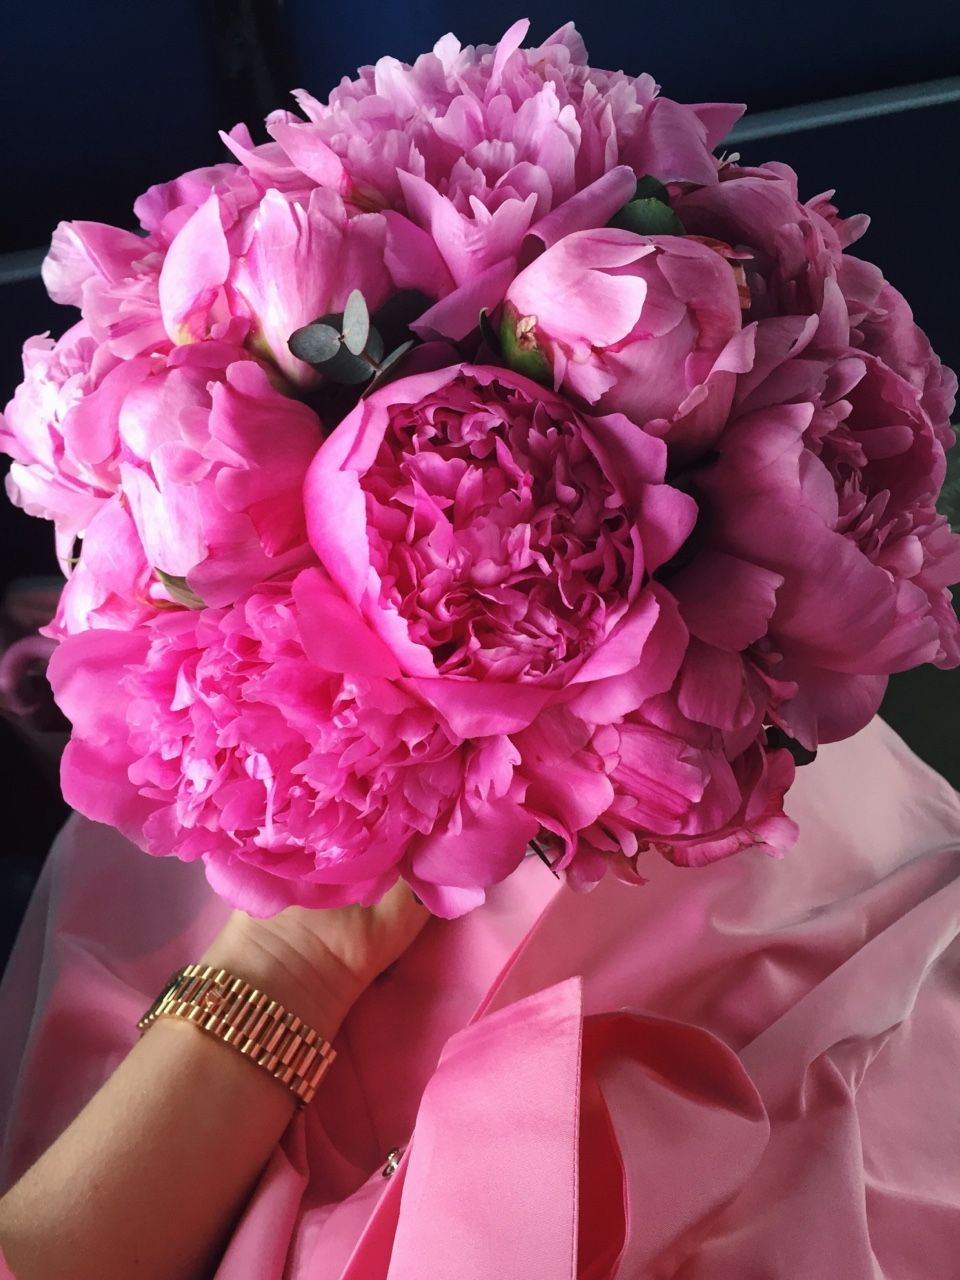 Pink Peonies Are The Most Beautiful Flowers Ever 3 Visit Youqueen